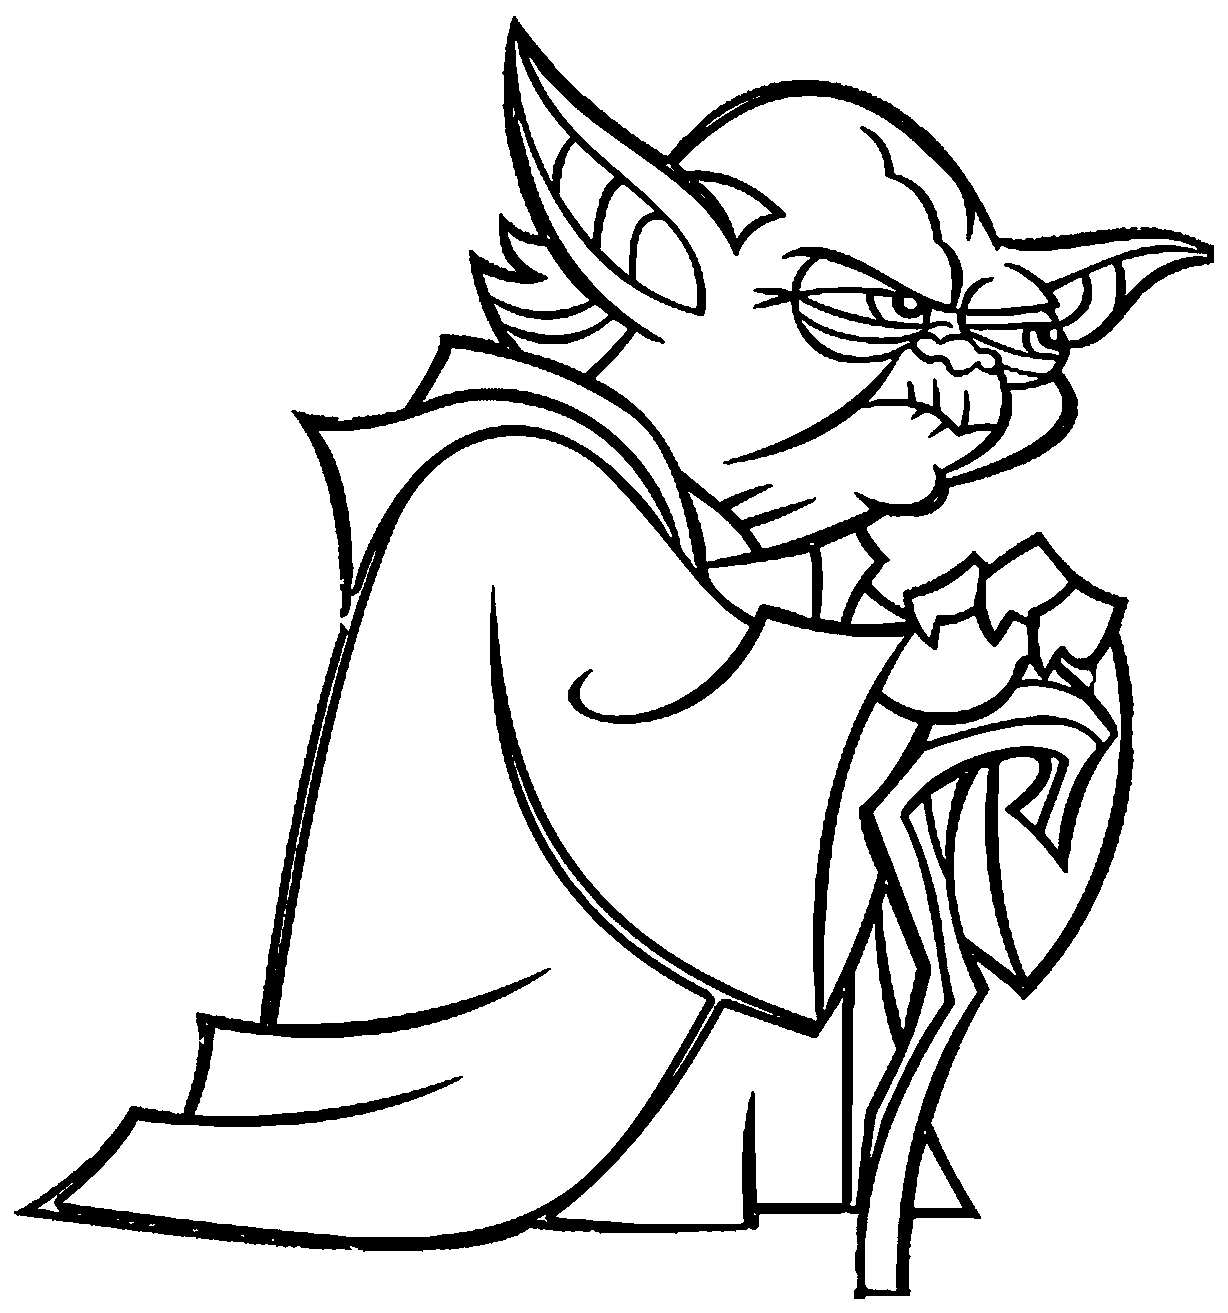 star wars pictures to color star wars to color for kids star wars kids coloring pages wars color star pictures to